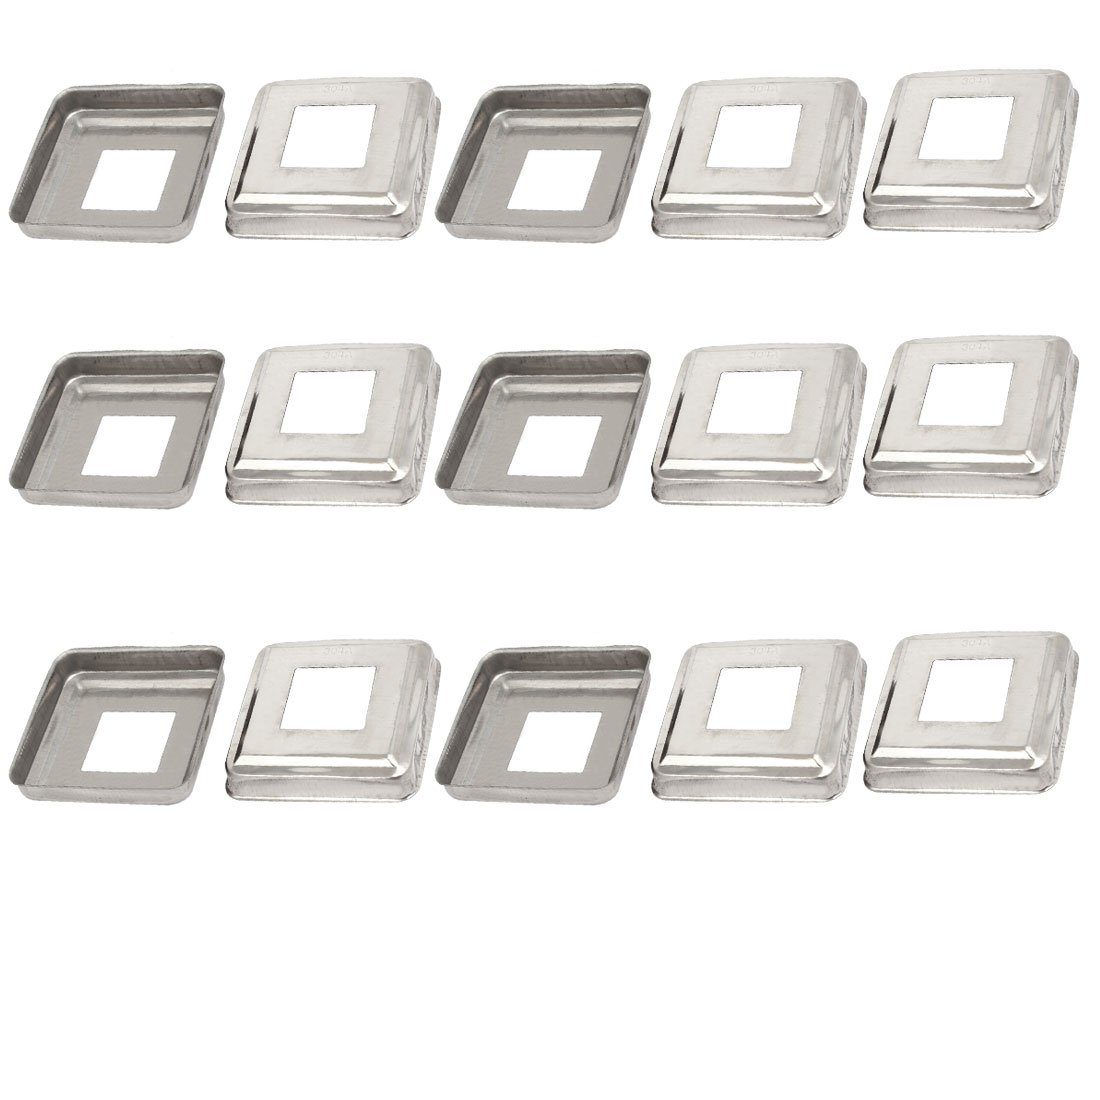 uxcell 15pcs Ladder Handrail Hand Rail 30mm x 30mm Post Plate Cover 304 Stainless Steel